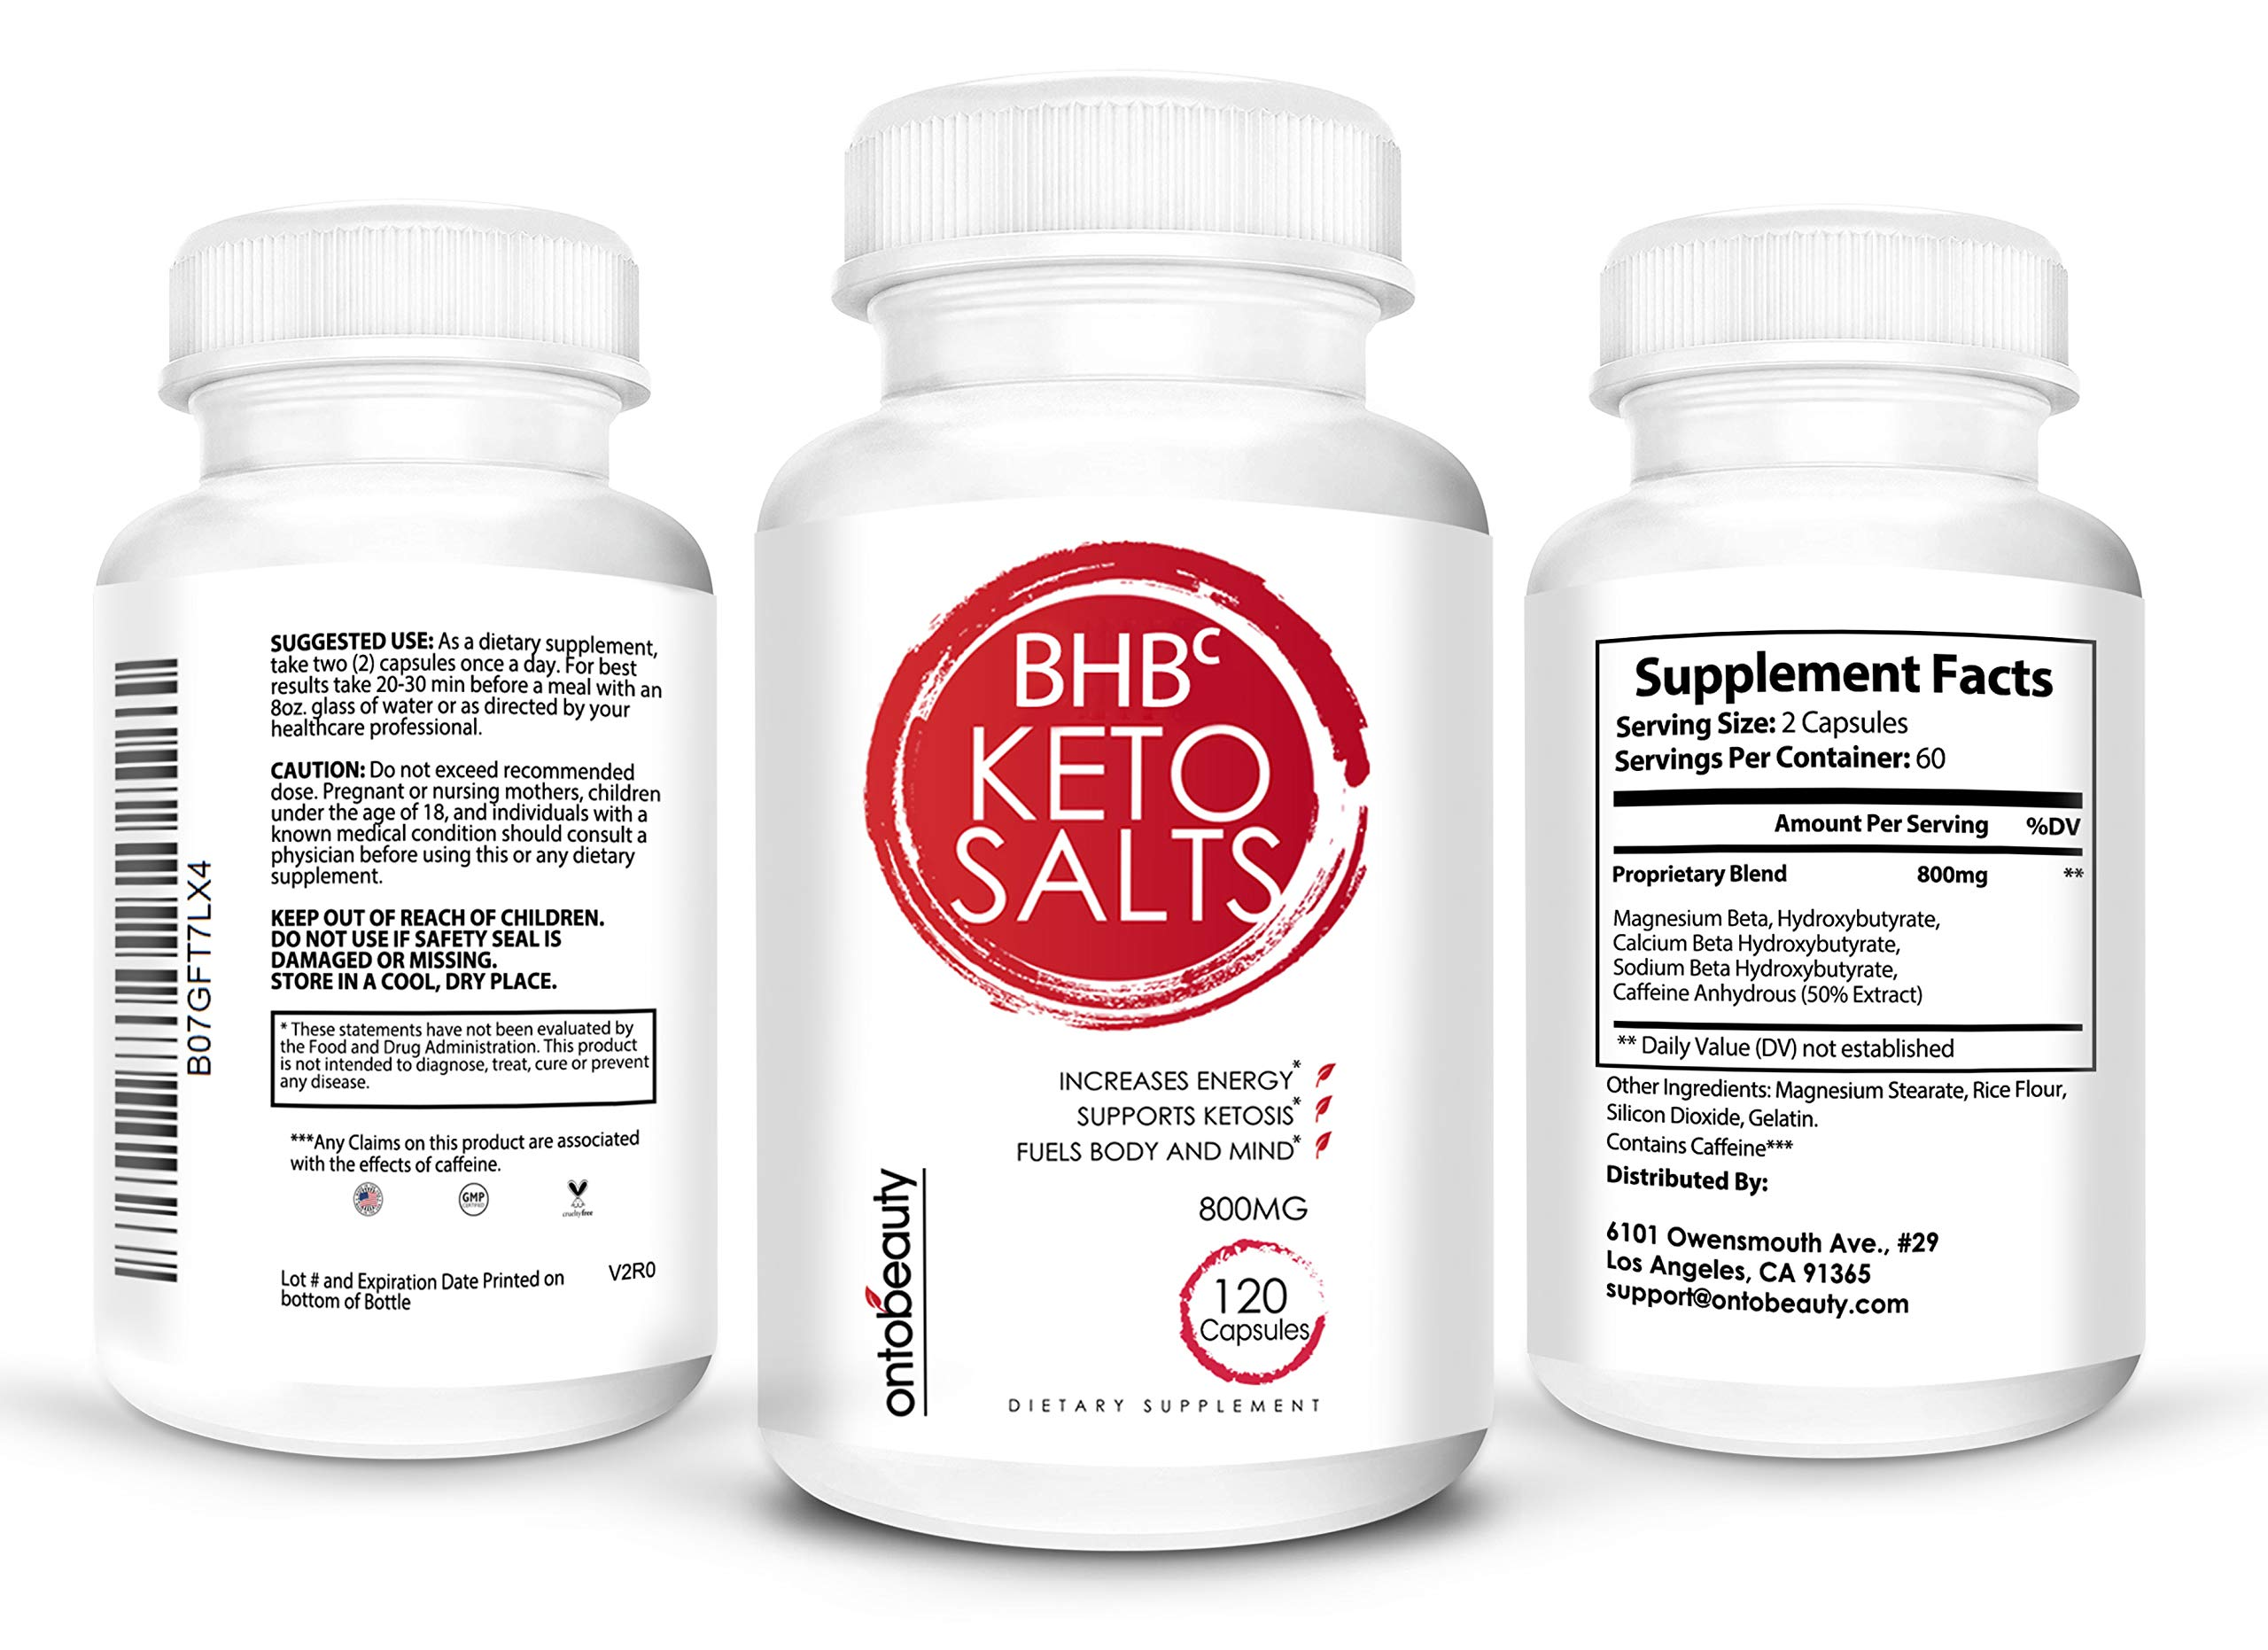 Keto BHB Salts, Exogenous Ketones for Ketosis Support and Weight Loss, Beta-Hydroxybutyrate, Boosts Energy, Improves Focus, Effectively Manages Fat, 120 Capsules, 60 Servings, 2-Month Supply